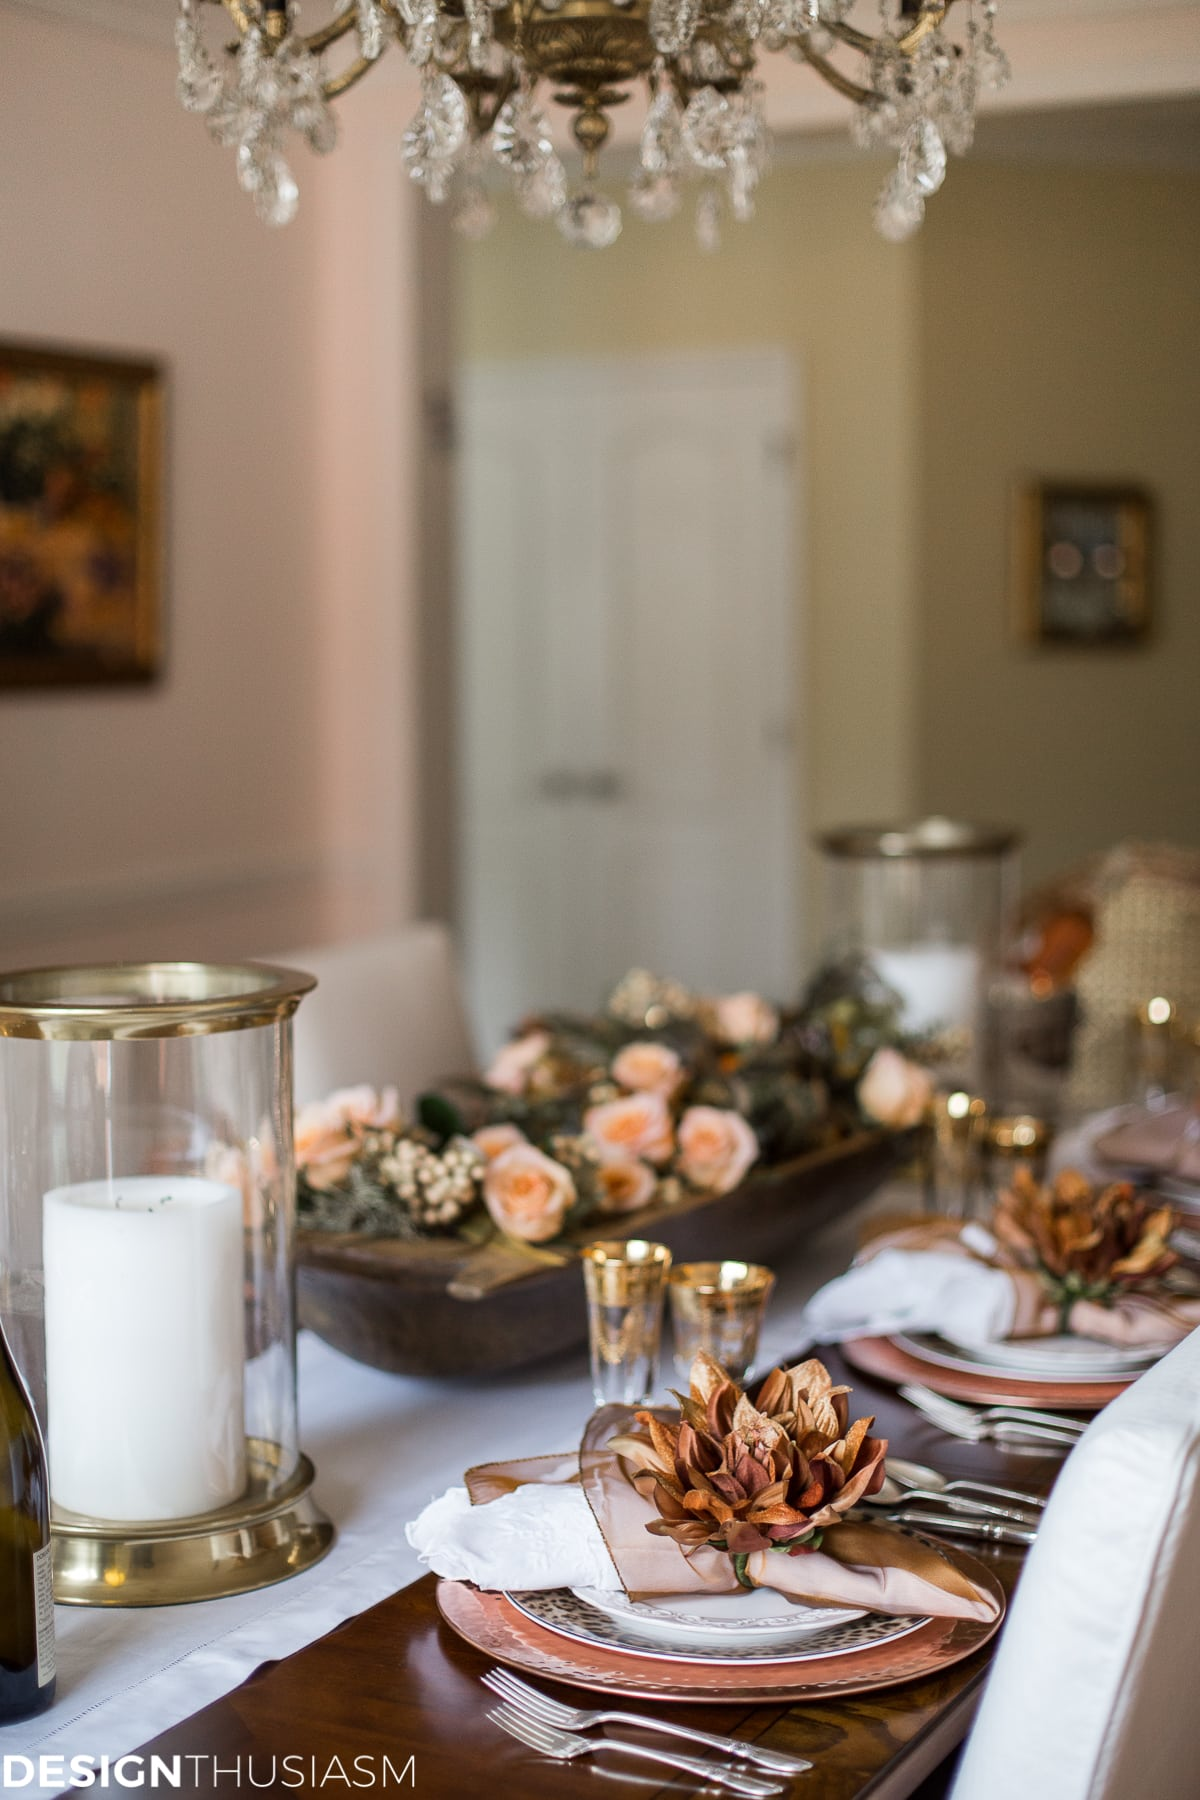 Using Fall Door Decorations To Dress Up Your Thanksgiving Table